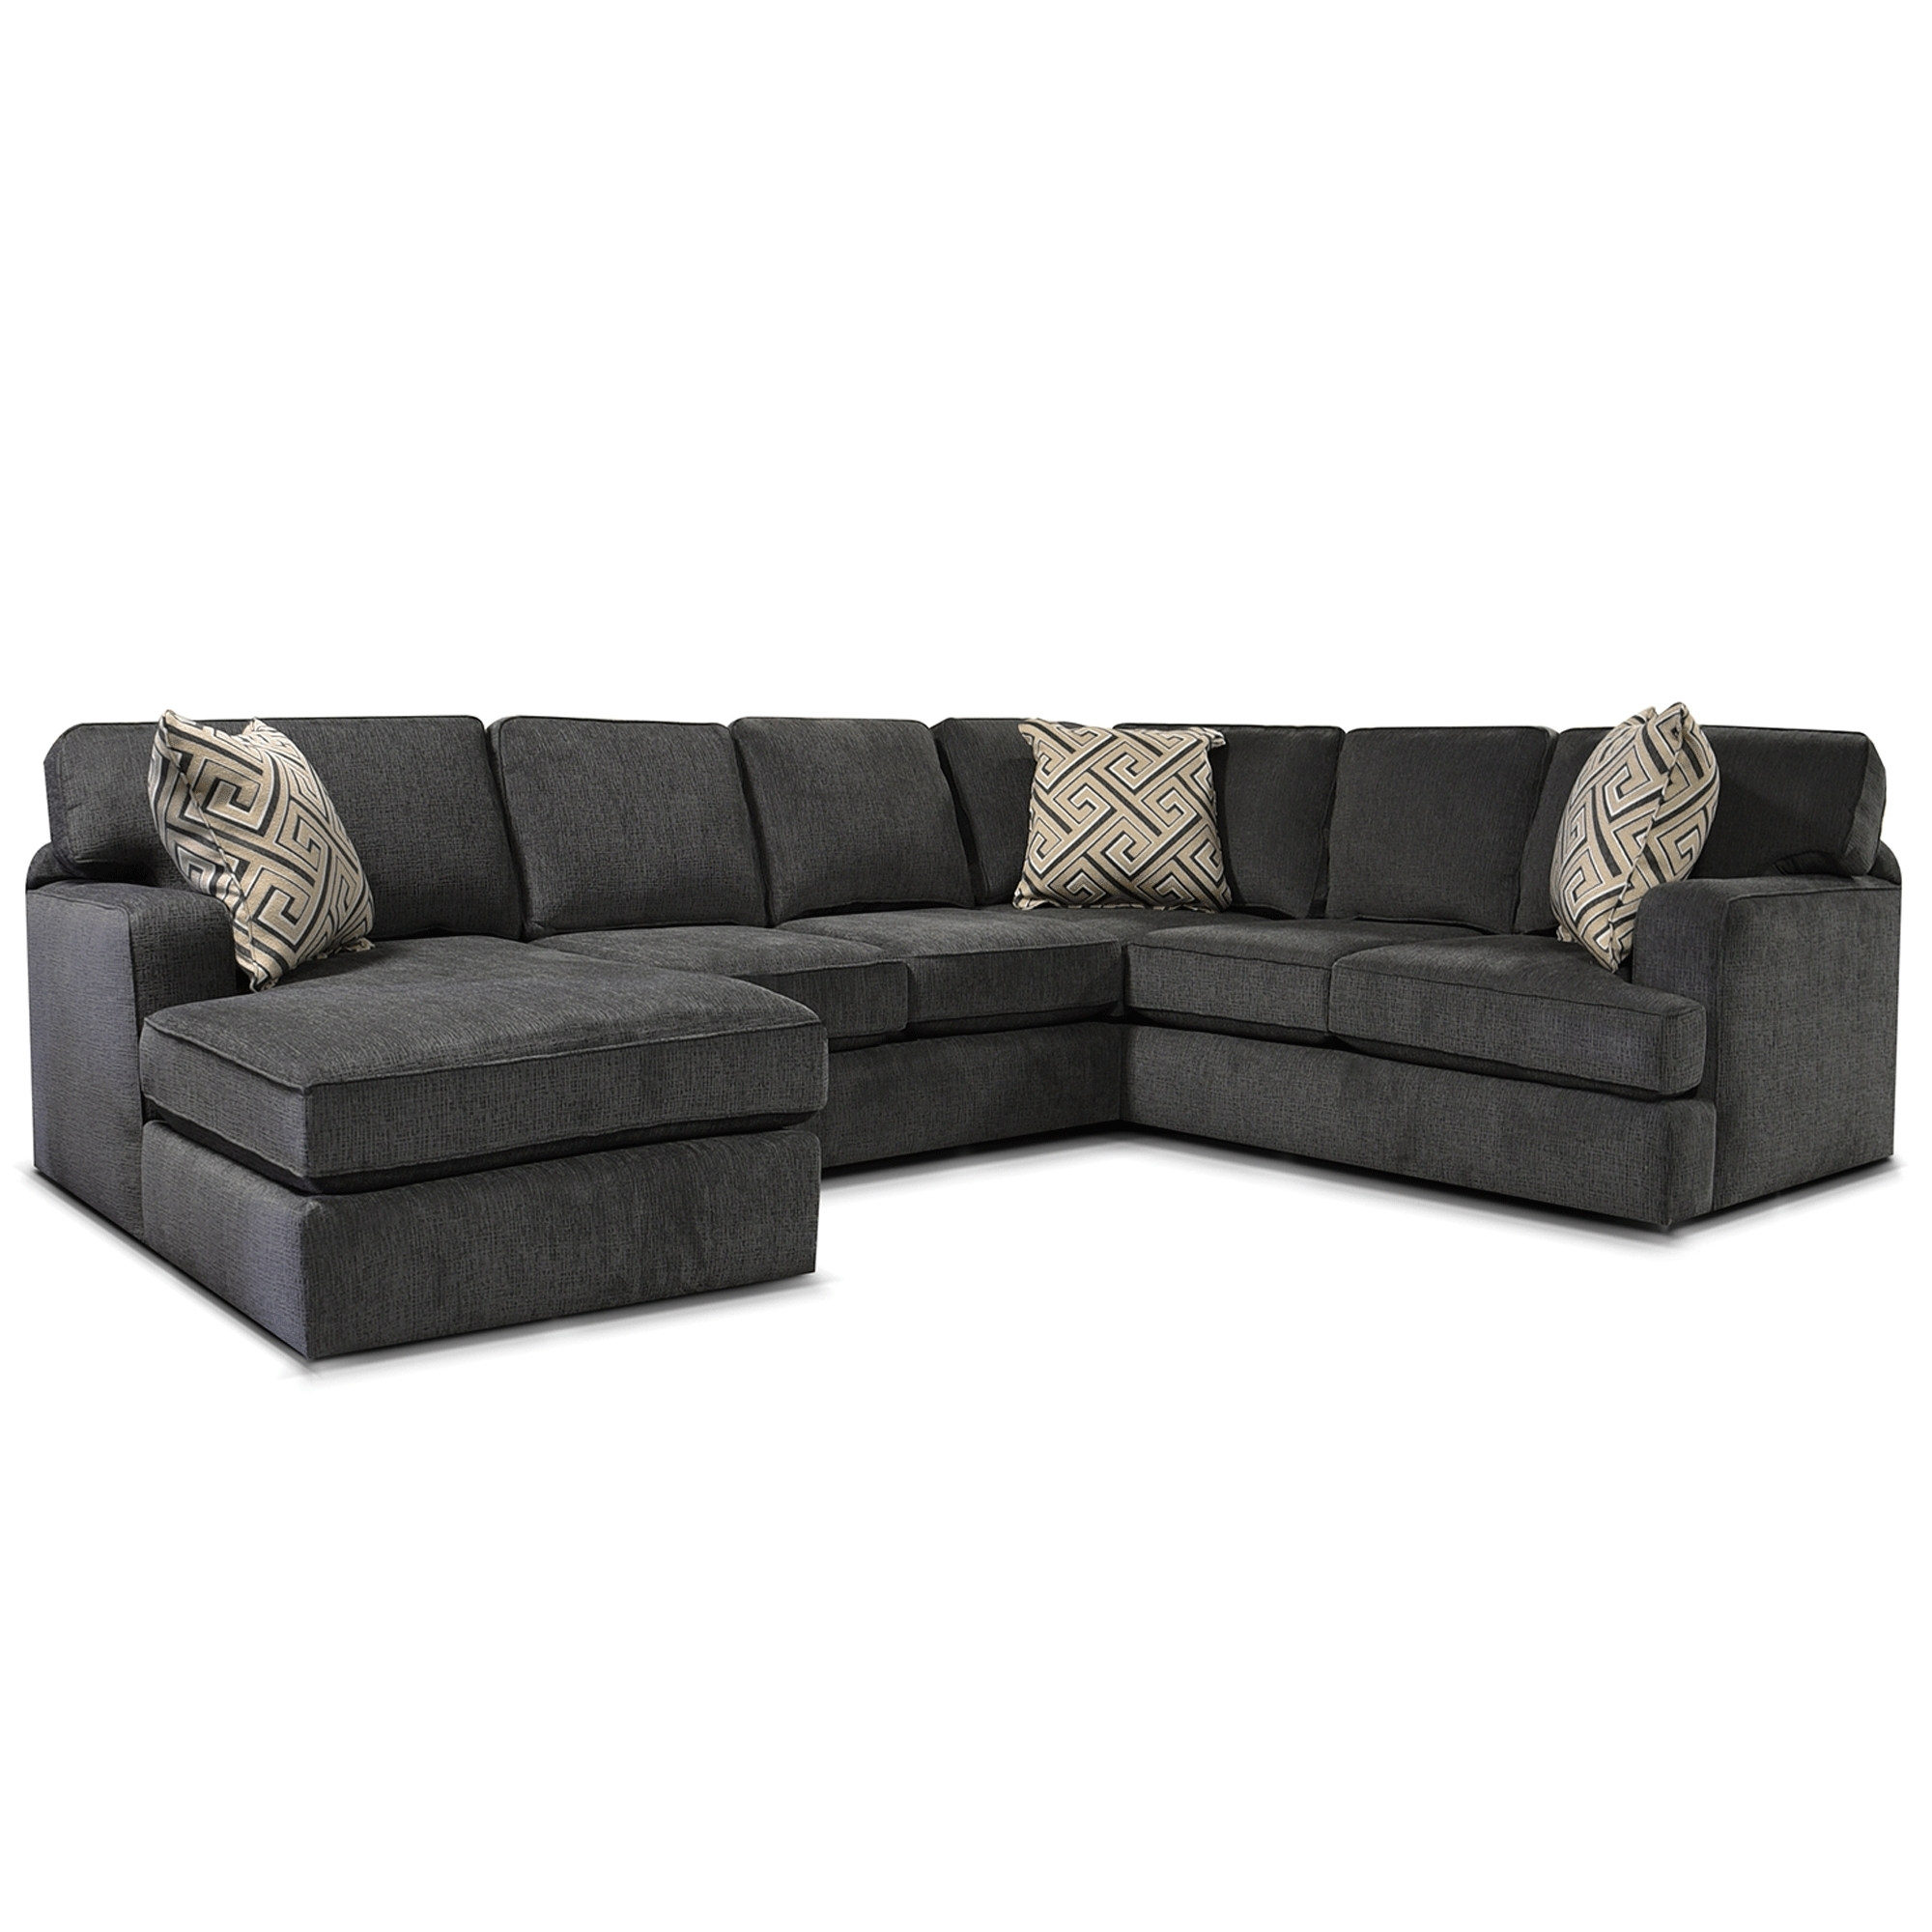 Rouse 3 Piece Sectional – Bernie & Phyl's Furniture England Regarding Widely Used England Sectional Sofas (View 13 of 20)